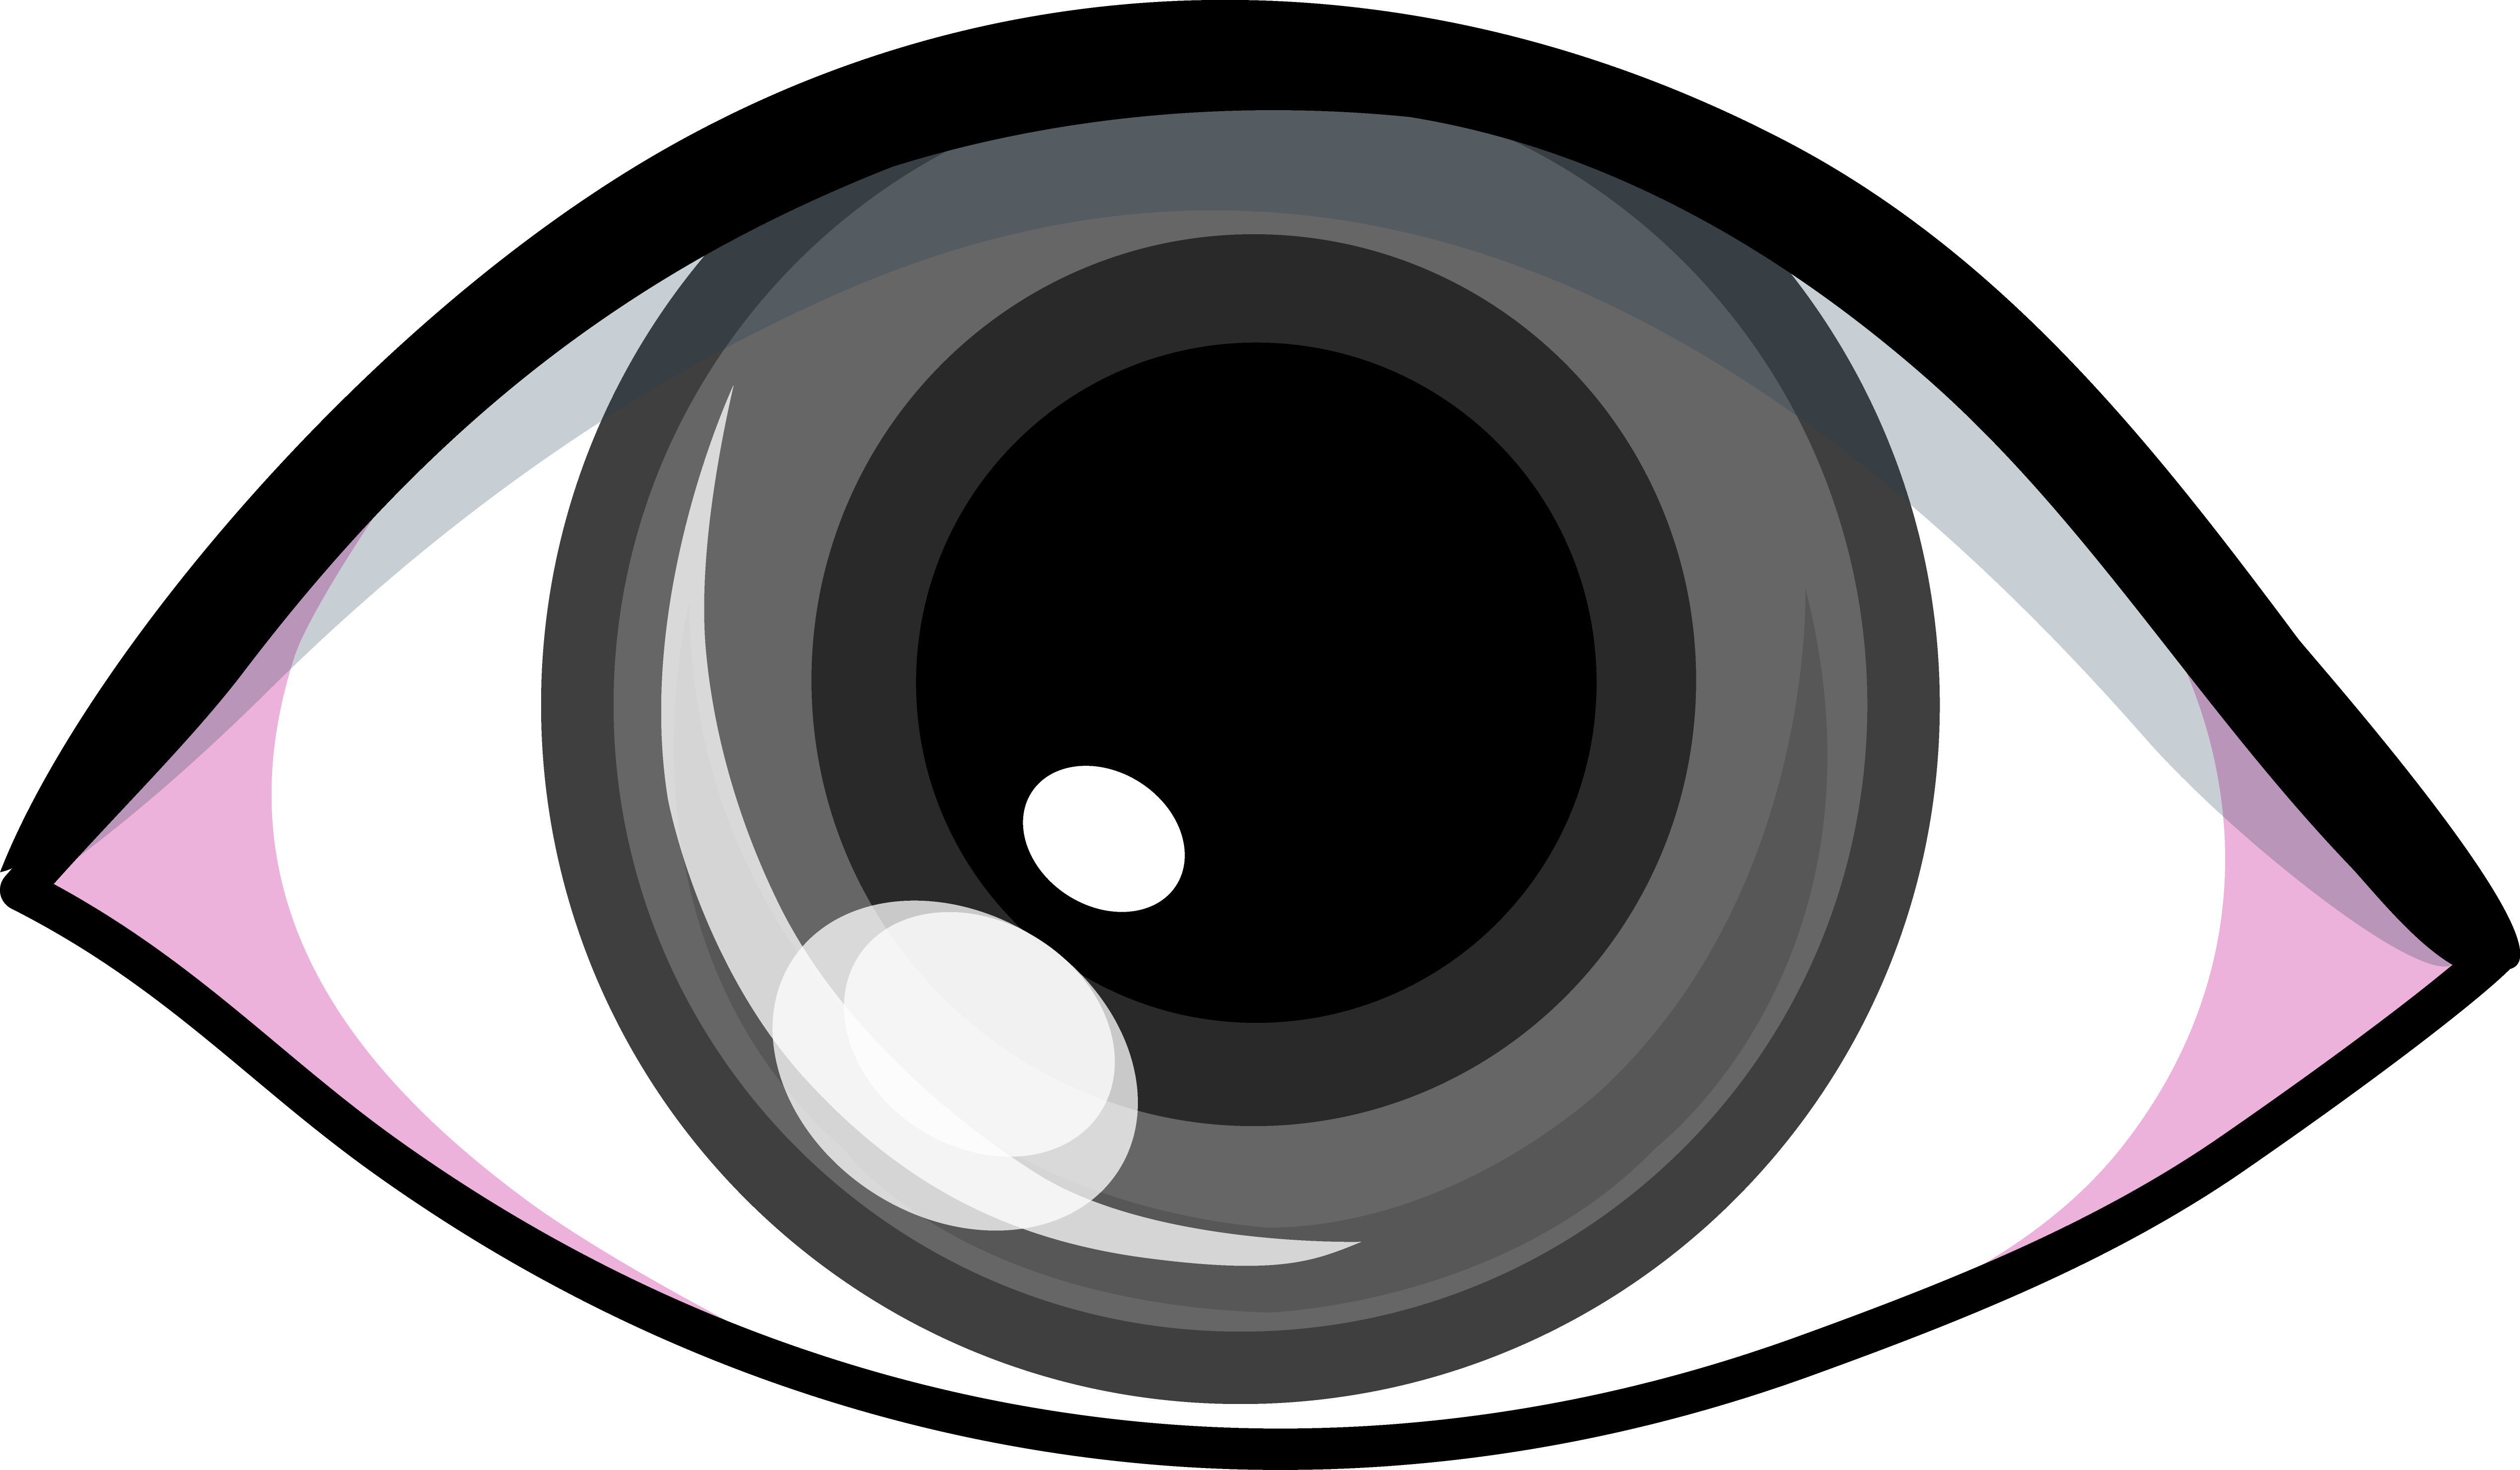 png transparent stock Eye clipart. Grey clip art design